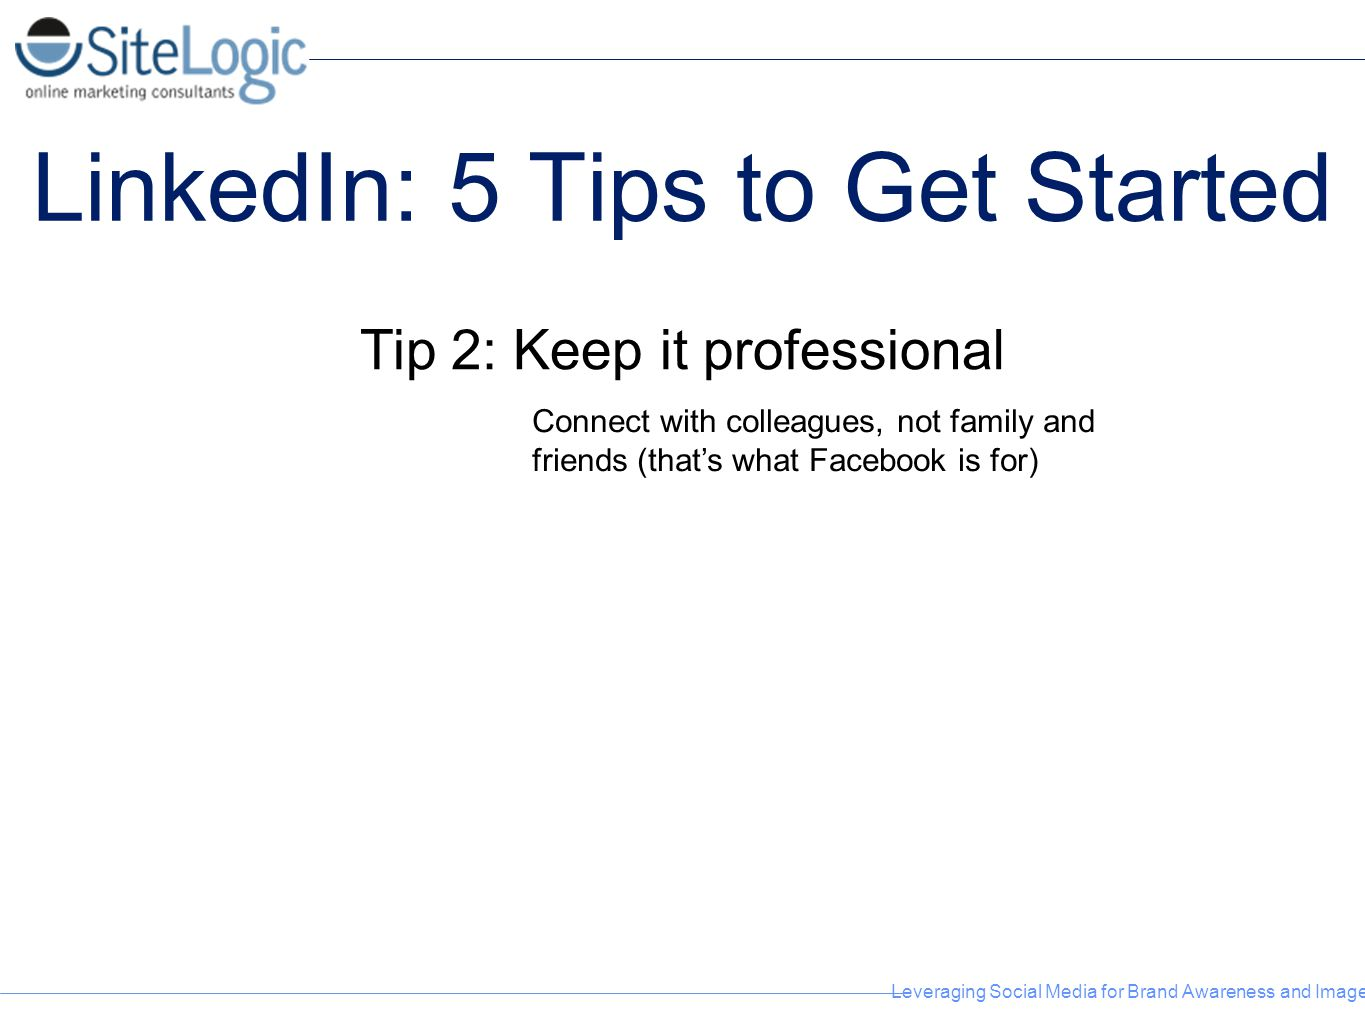 Leveraging Social Media for Brand Awareness and Image LinkedIn: 5 Tips to Get Started Tip 2: Keep it professional Connect with colleagues, not family